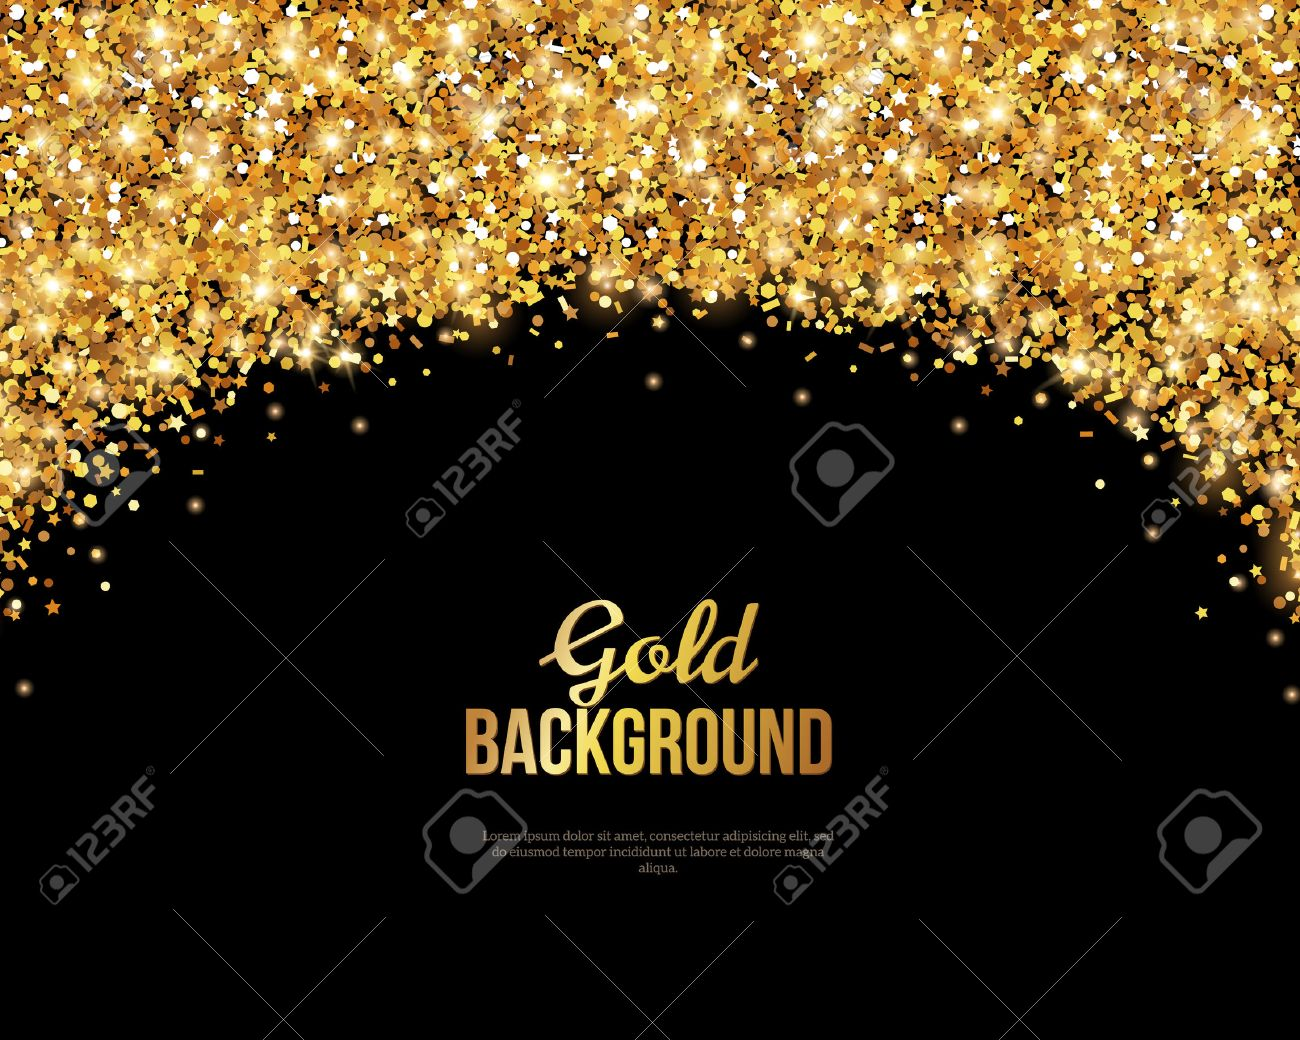 Black and gold greeting card design golden dust illustration black and gold greeting card design golden dust illustration happy new year stopboris Gallery